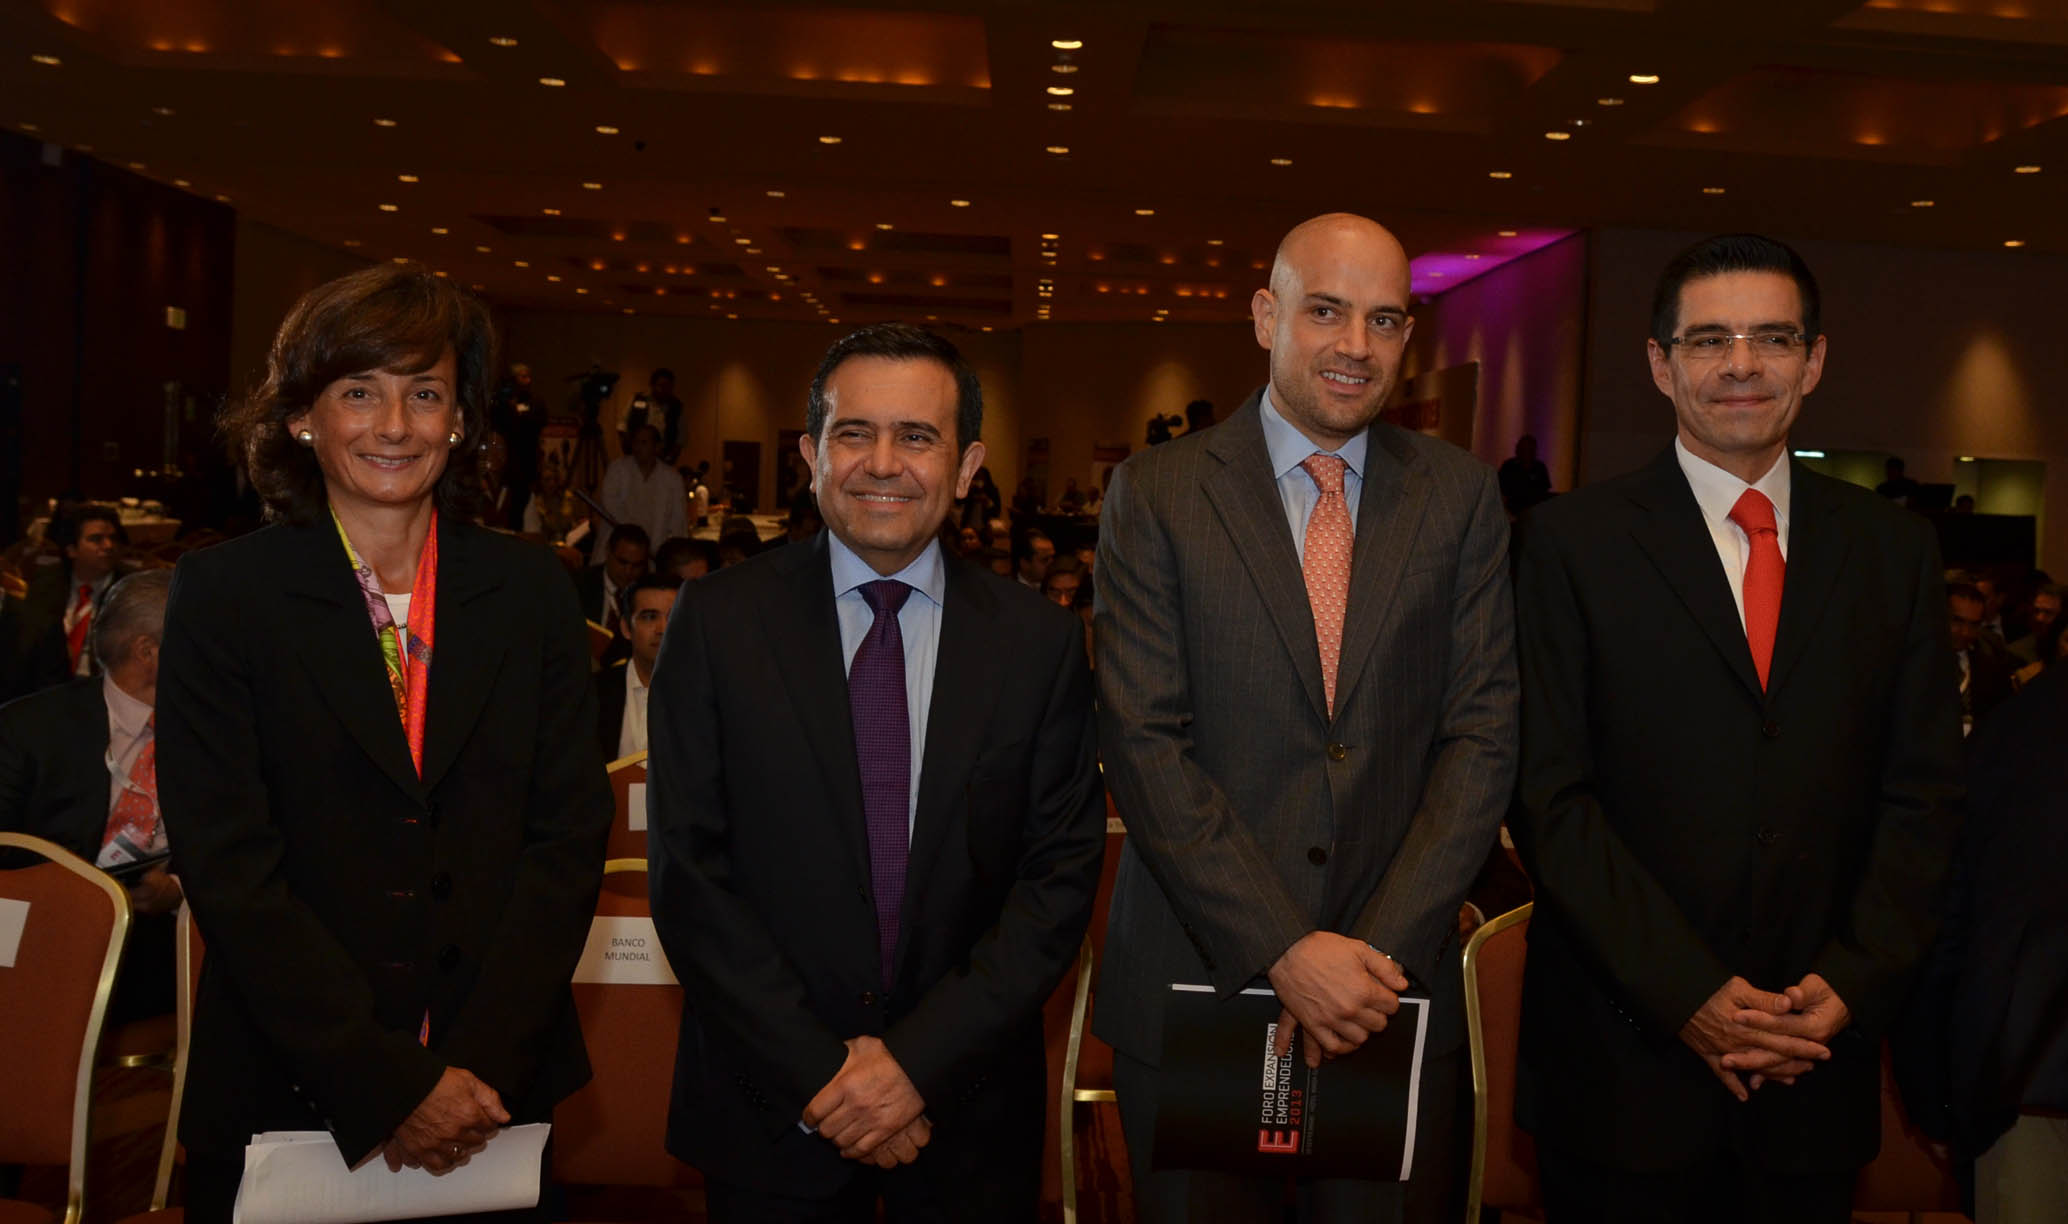 Foro emprendedores expansin 4